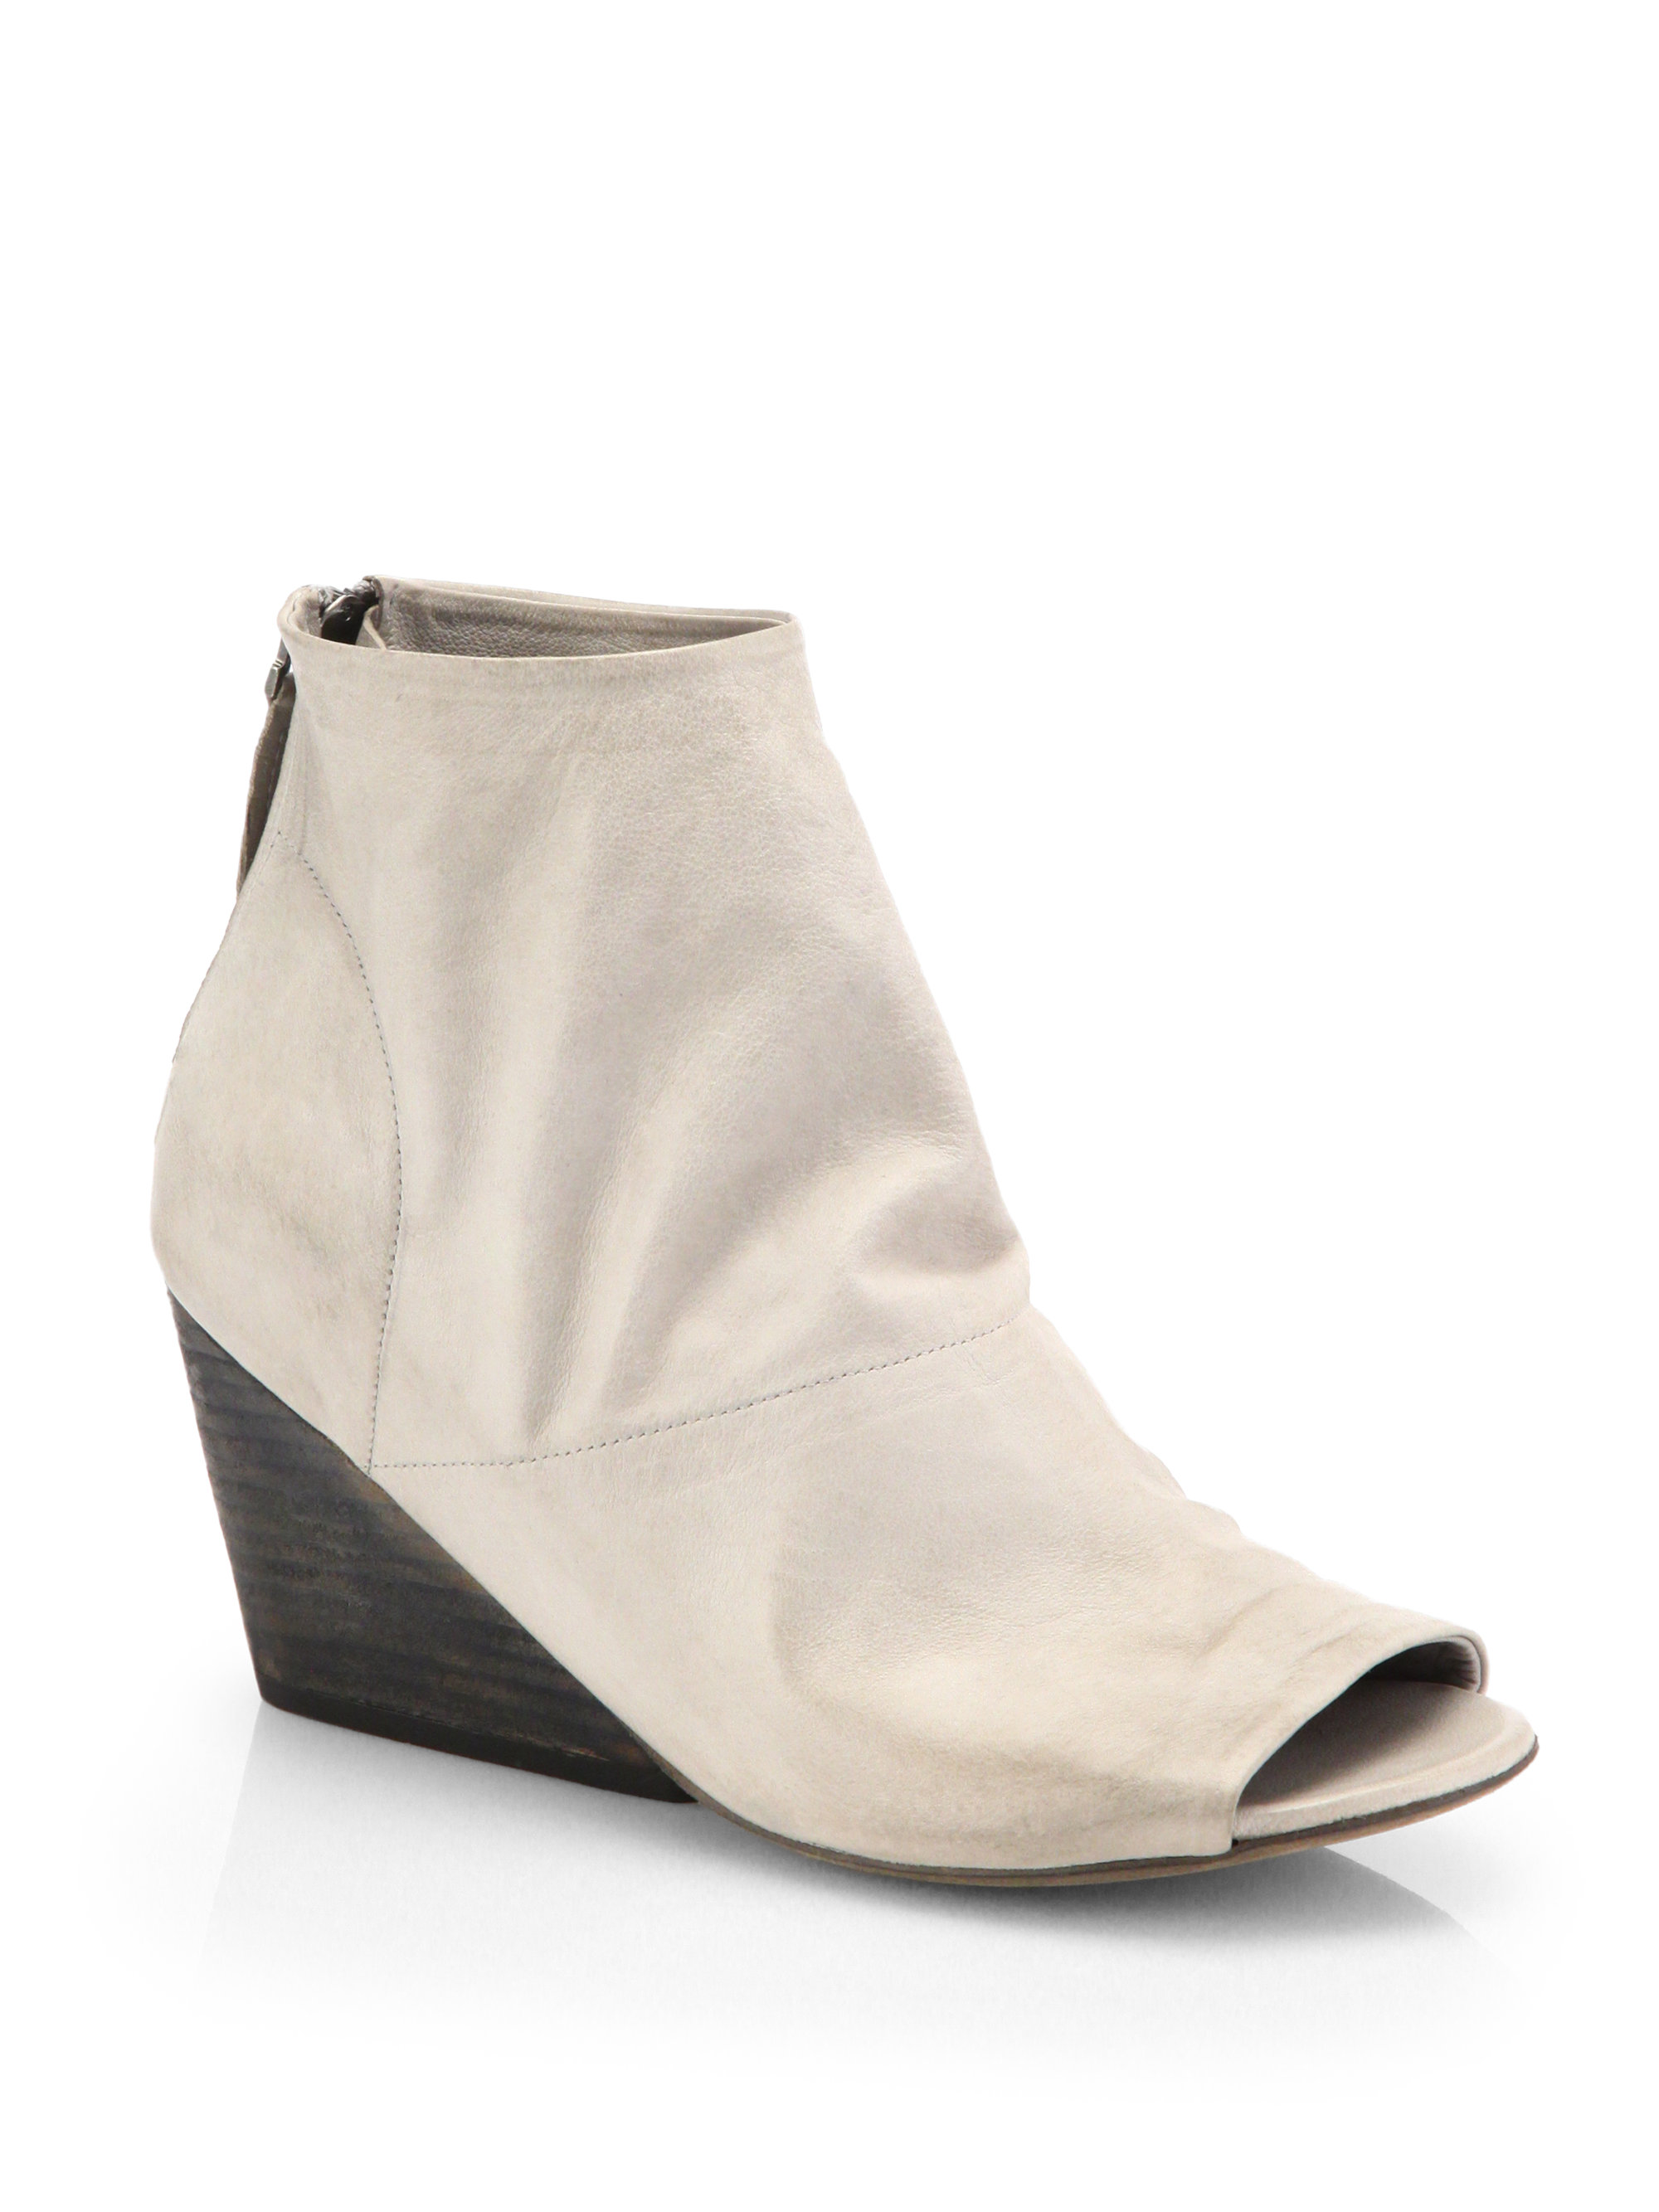 Marsèll Suede Peeptoe Wedge Ankle Boots in White | Lyst